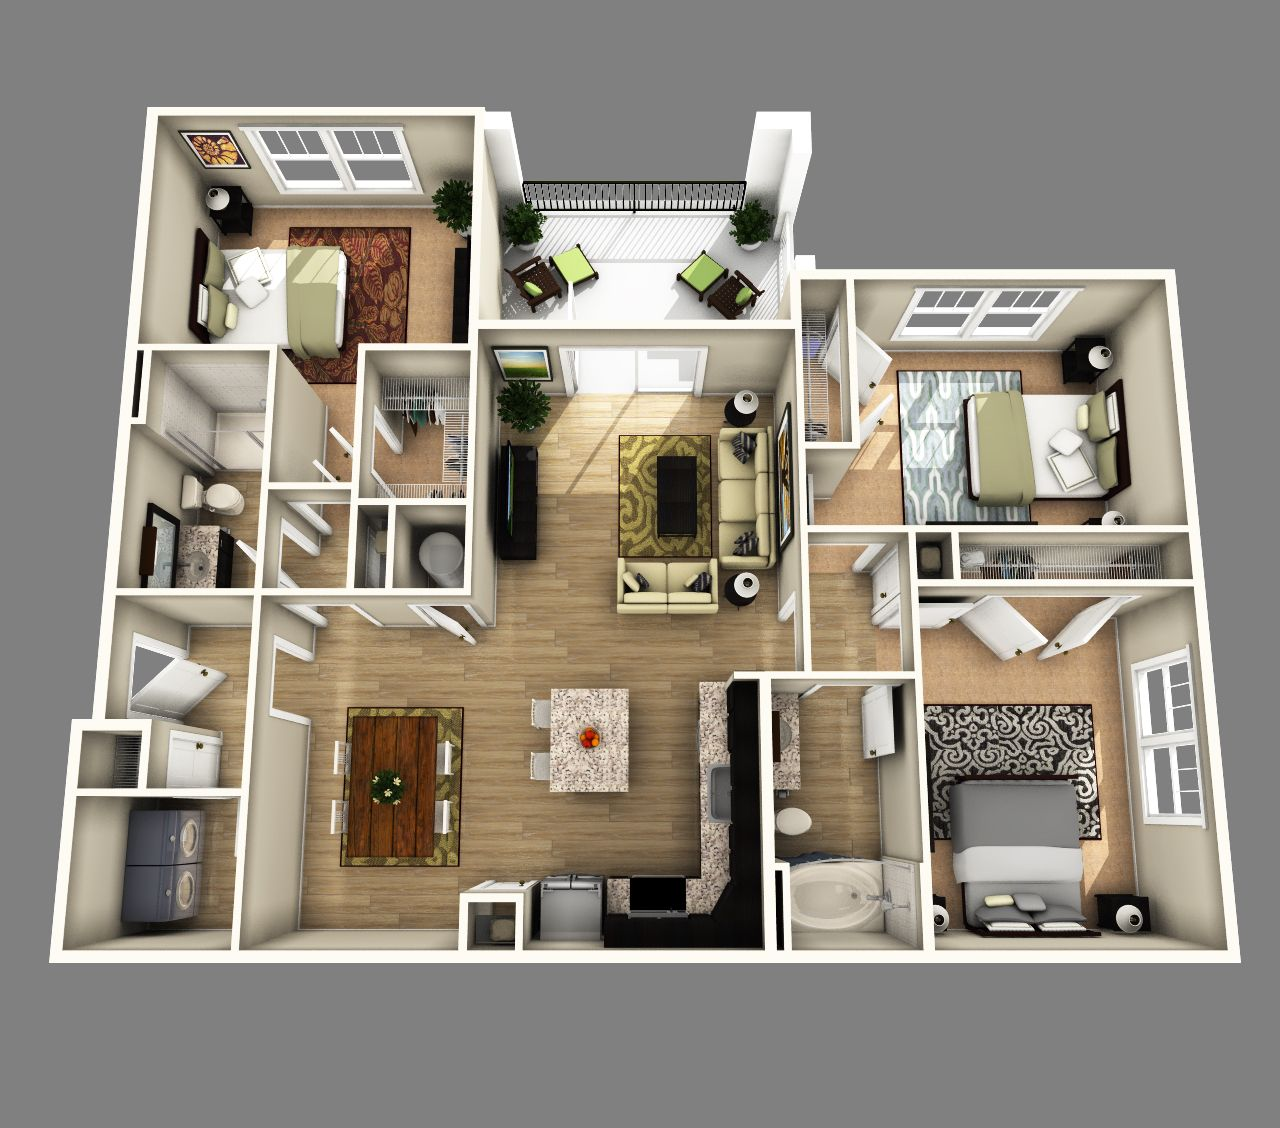 3d open floor plan 3 bedroom 2 bathroom google search for 2 bedroom house plans 3d